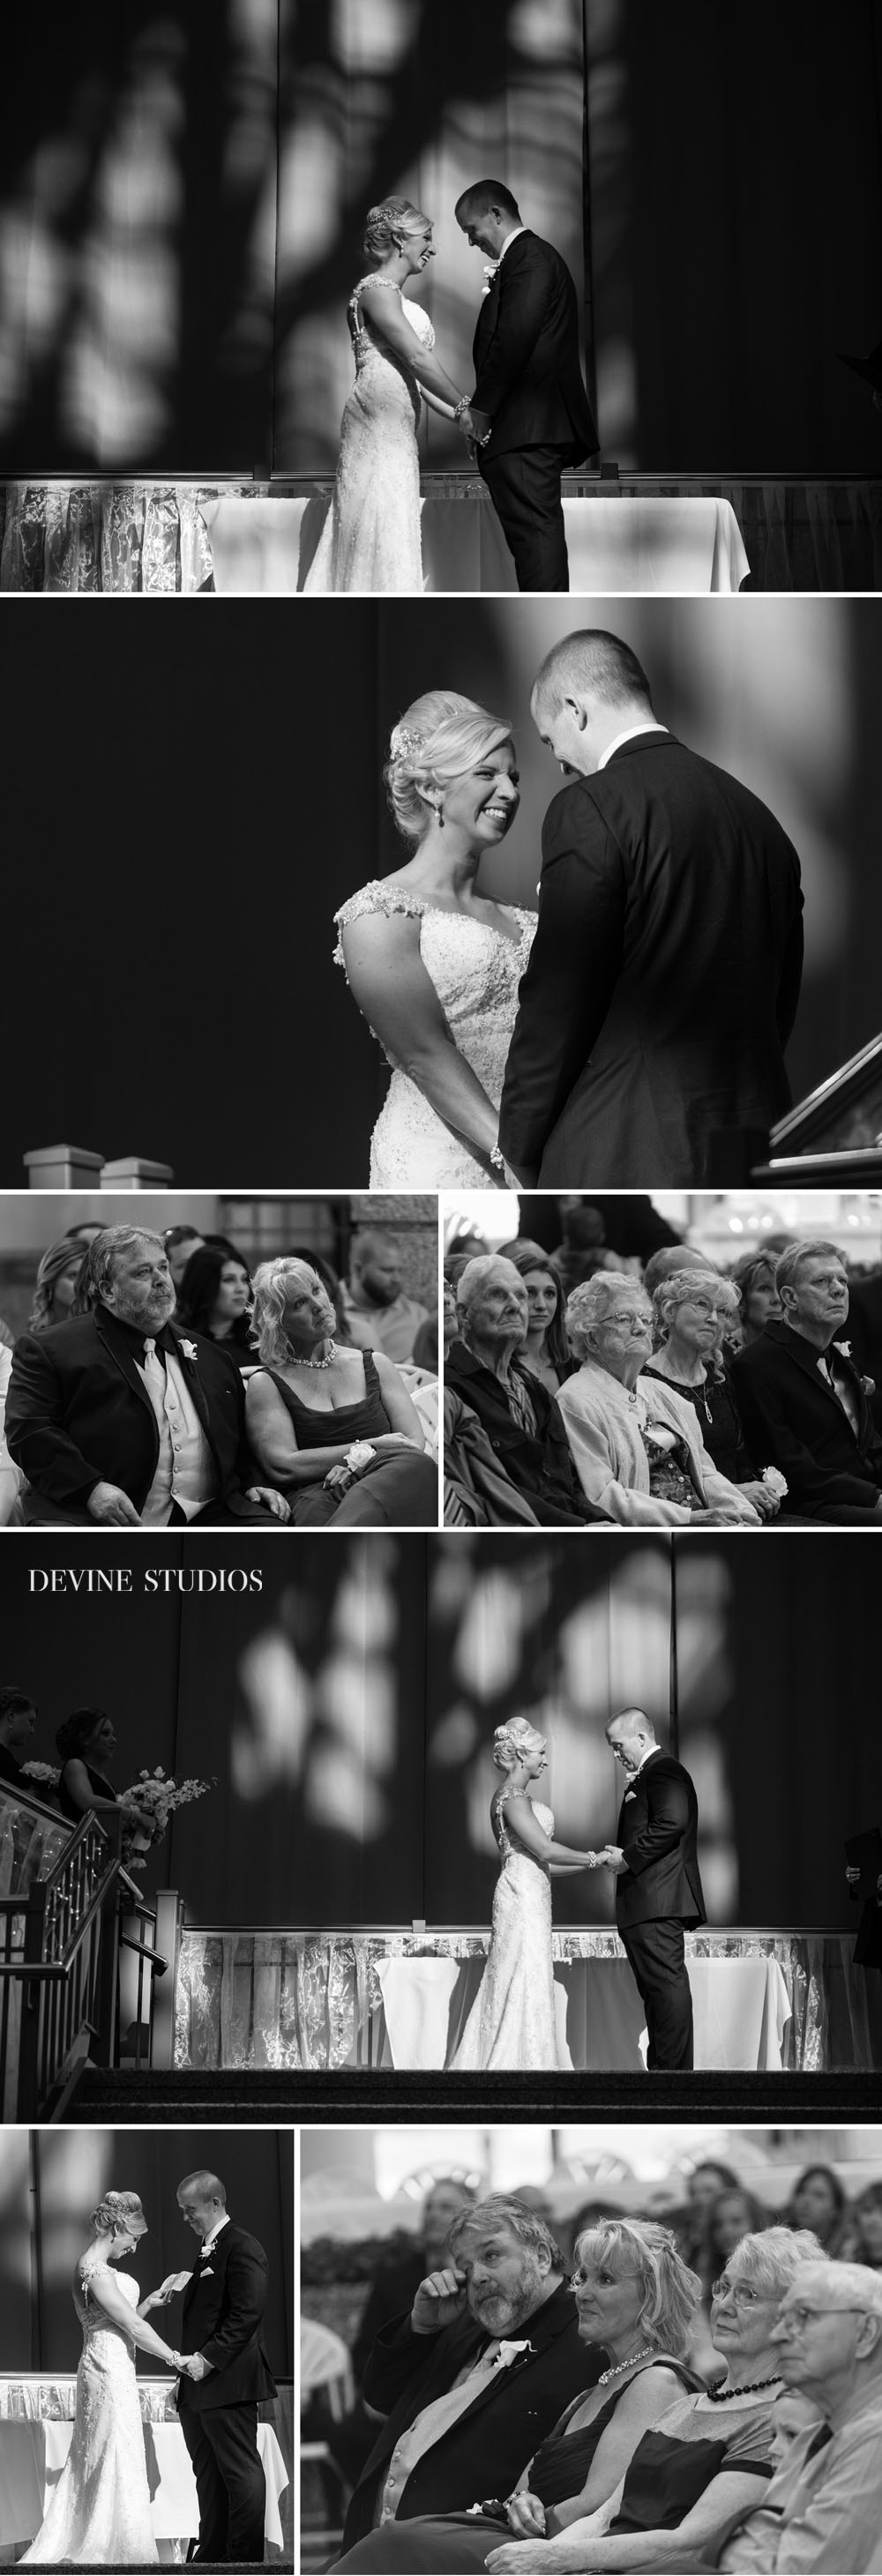 http://devinestudios.com/boudoir/wp-content/uploads/2016/05/10-839-post/Kansas-City-Wedding-Photography-Town-Pavilion-photojournalist-photographers11.jpg